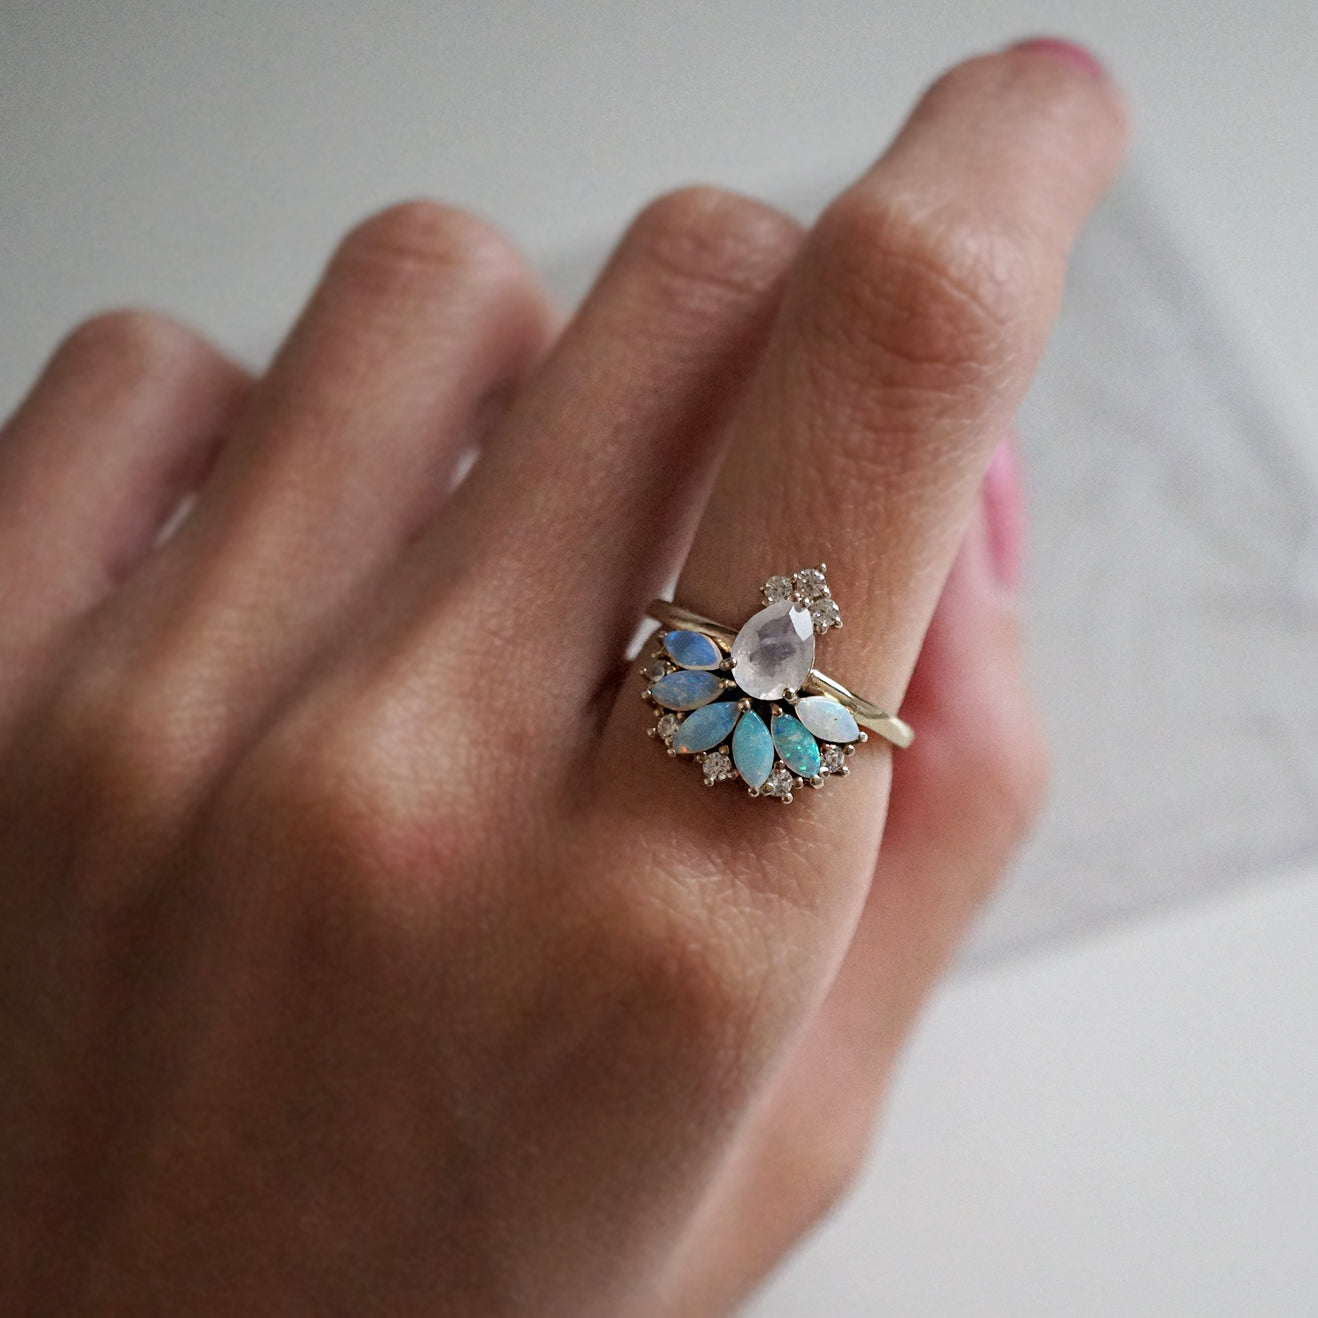 Fairydust Opal Moonstone Diamond Ring